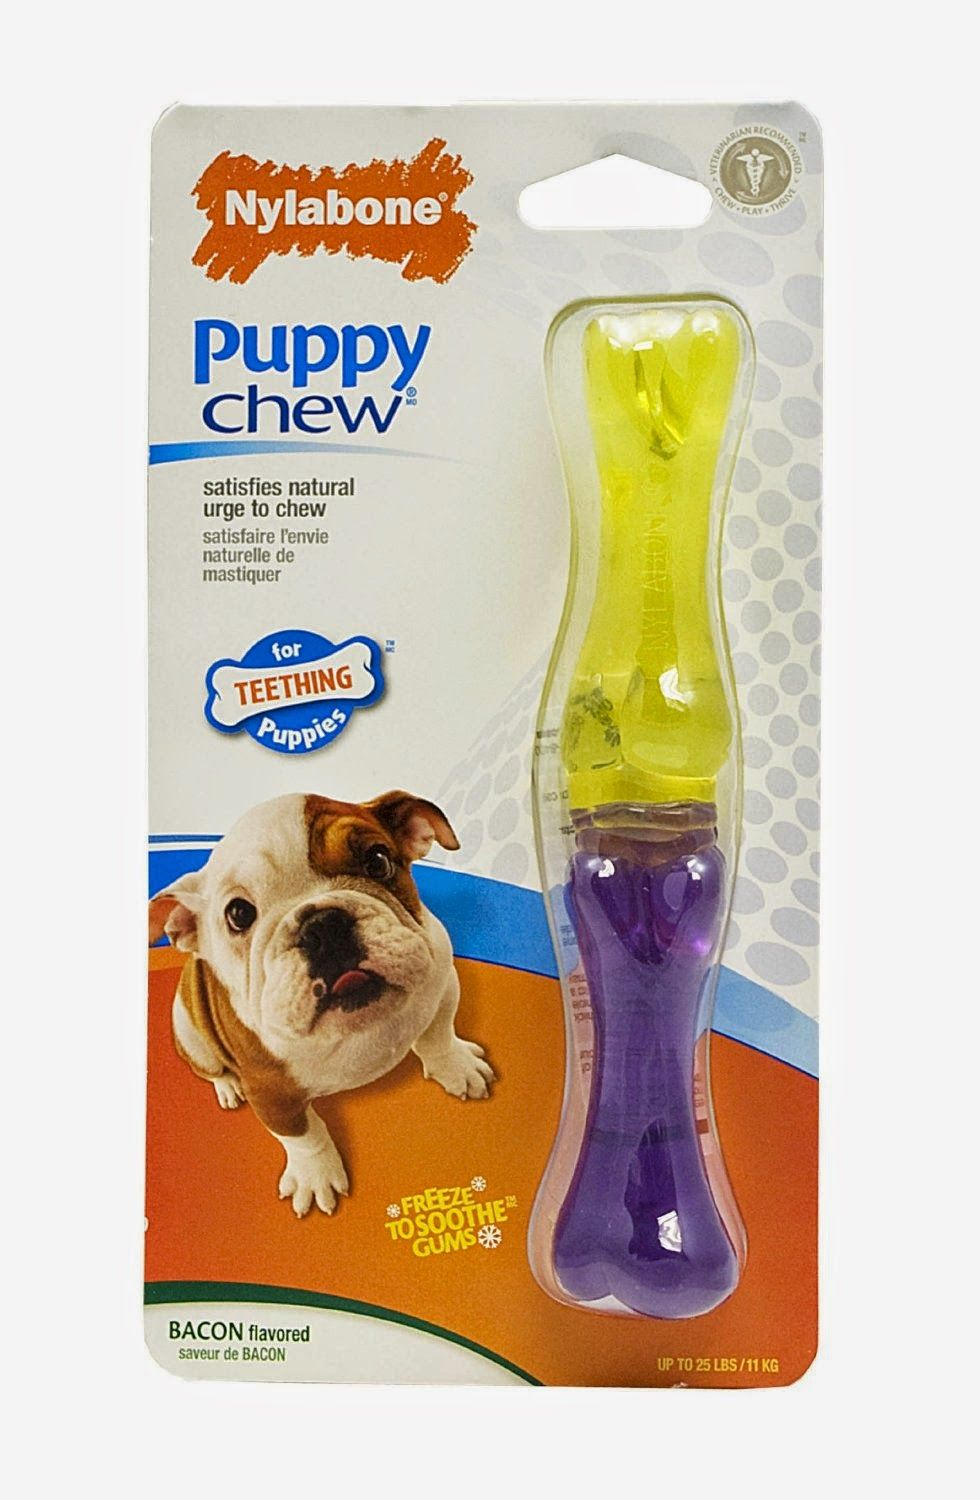 The 10 Best Puppy Chew Toys For Teething Puppies Dog Toys Puppy